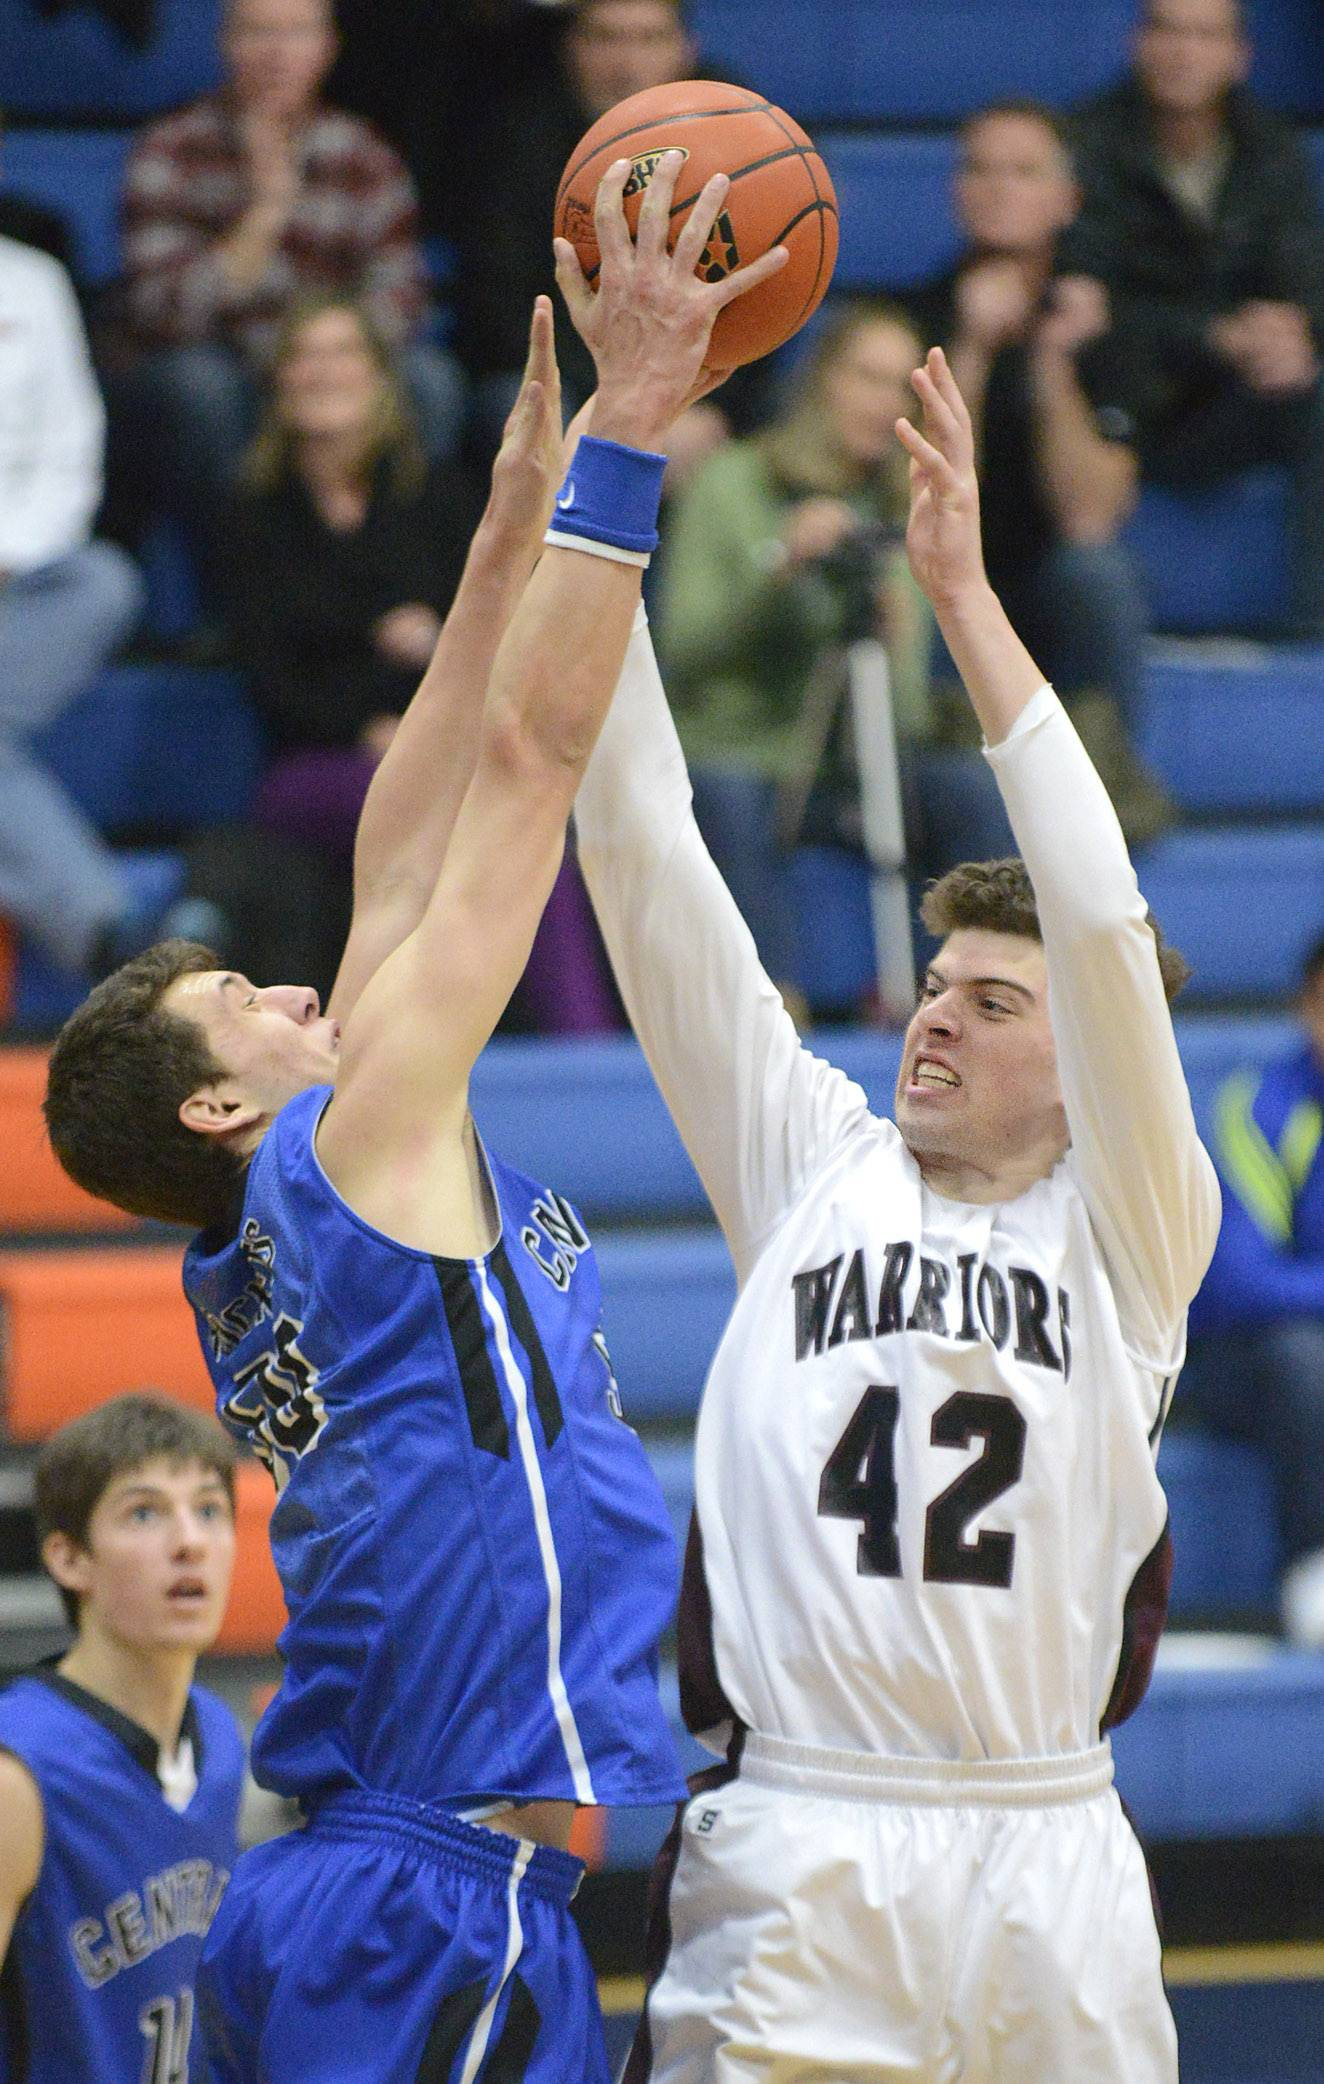 Burlington Central's Duncan Ozburn blocks a shot by Wheaton Academy's Chandler Fuzak in the third quarter .